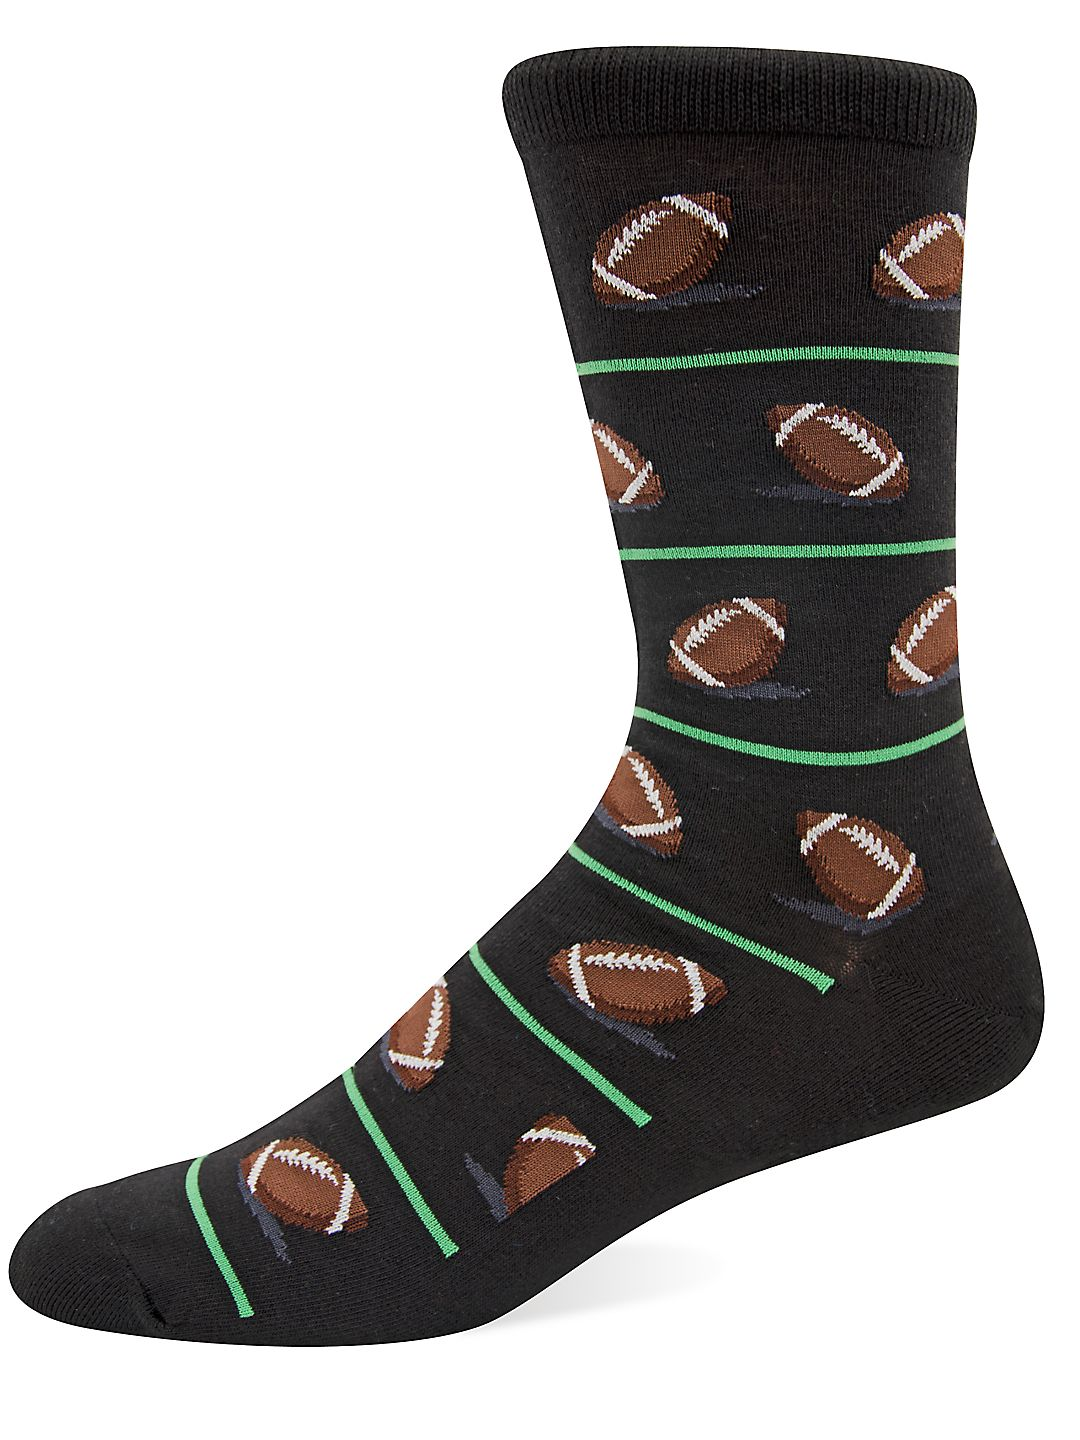 Football Knit Socks